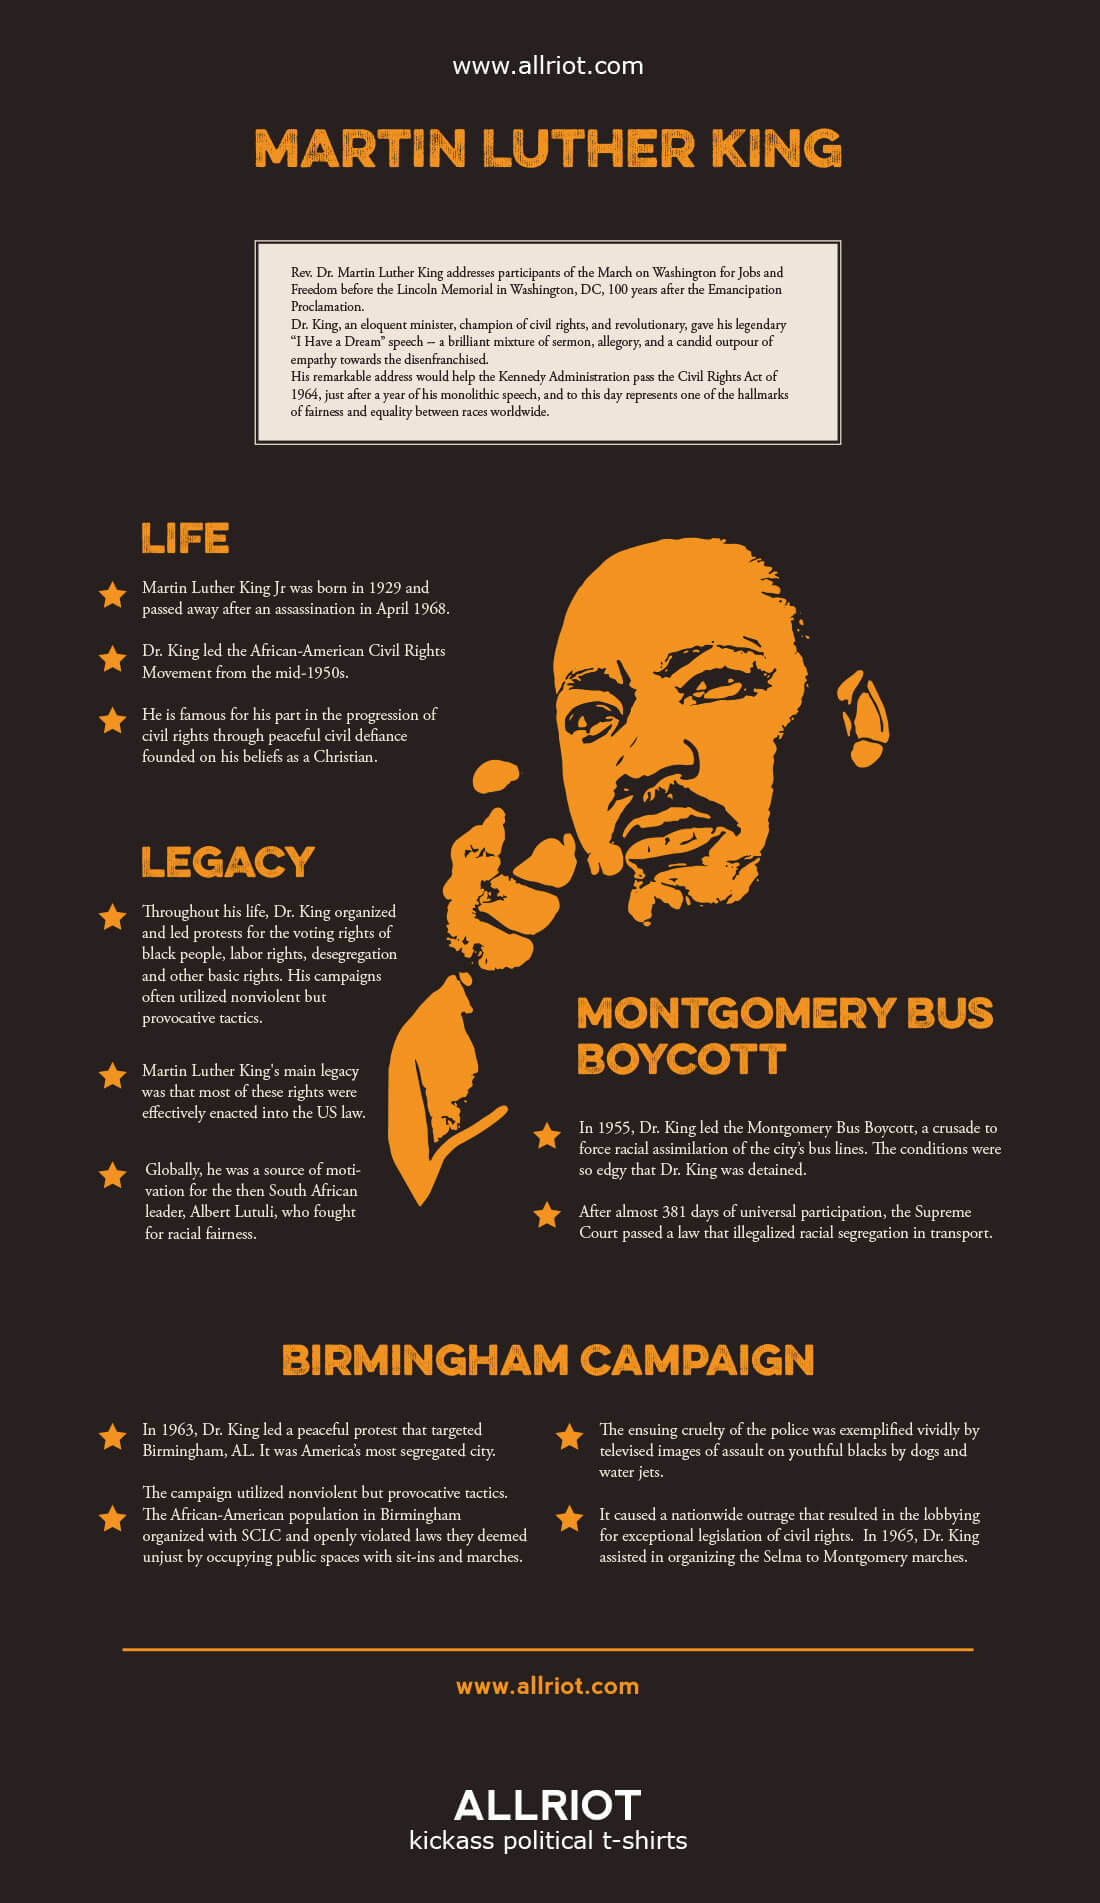 martin luther king jr life facts and legacy